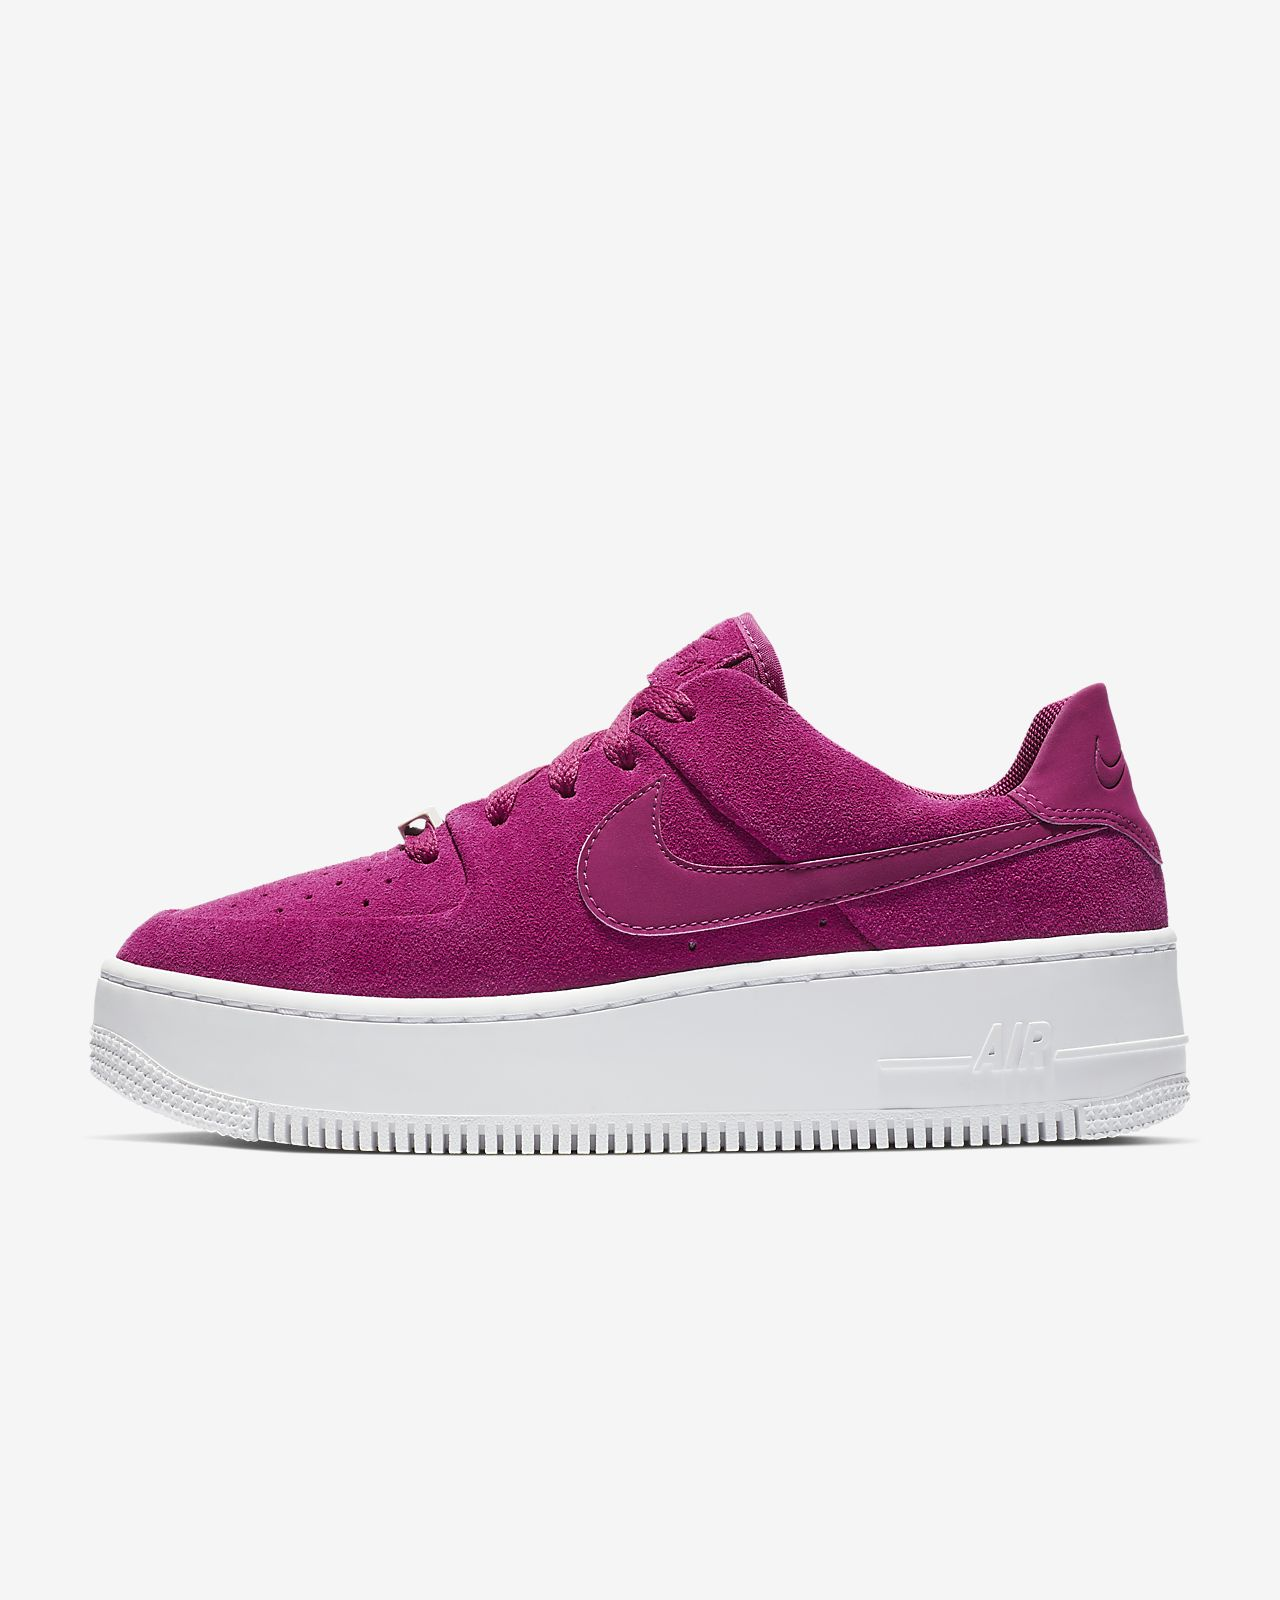 official photos af7f0 eeac8 ... Chaussure Nike Air Force 1 Sage Low pour Femme